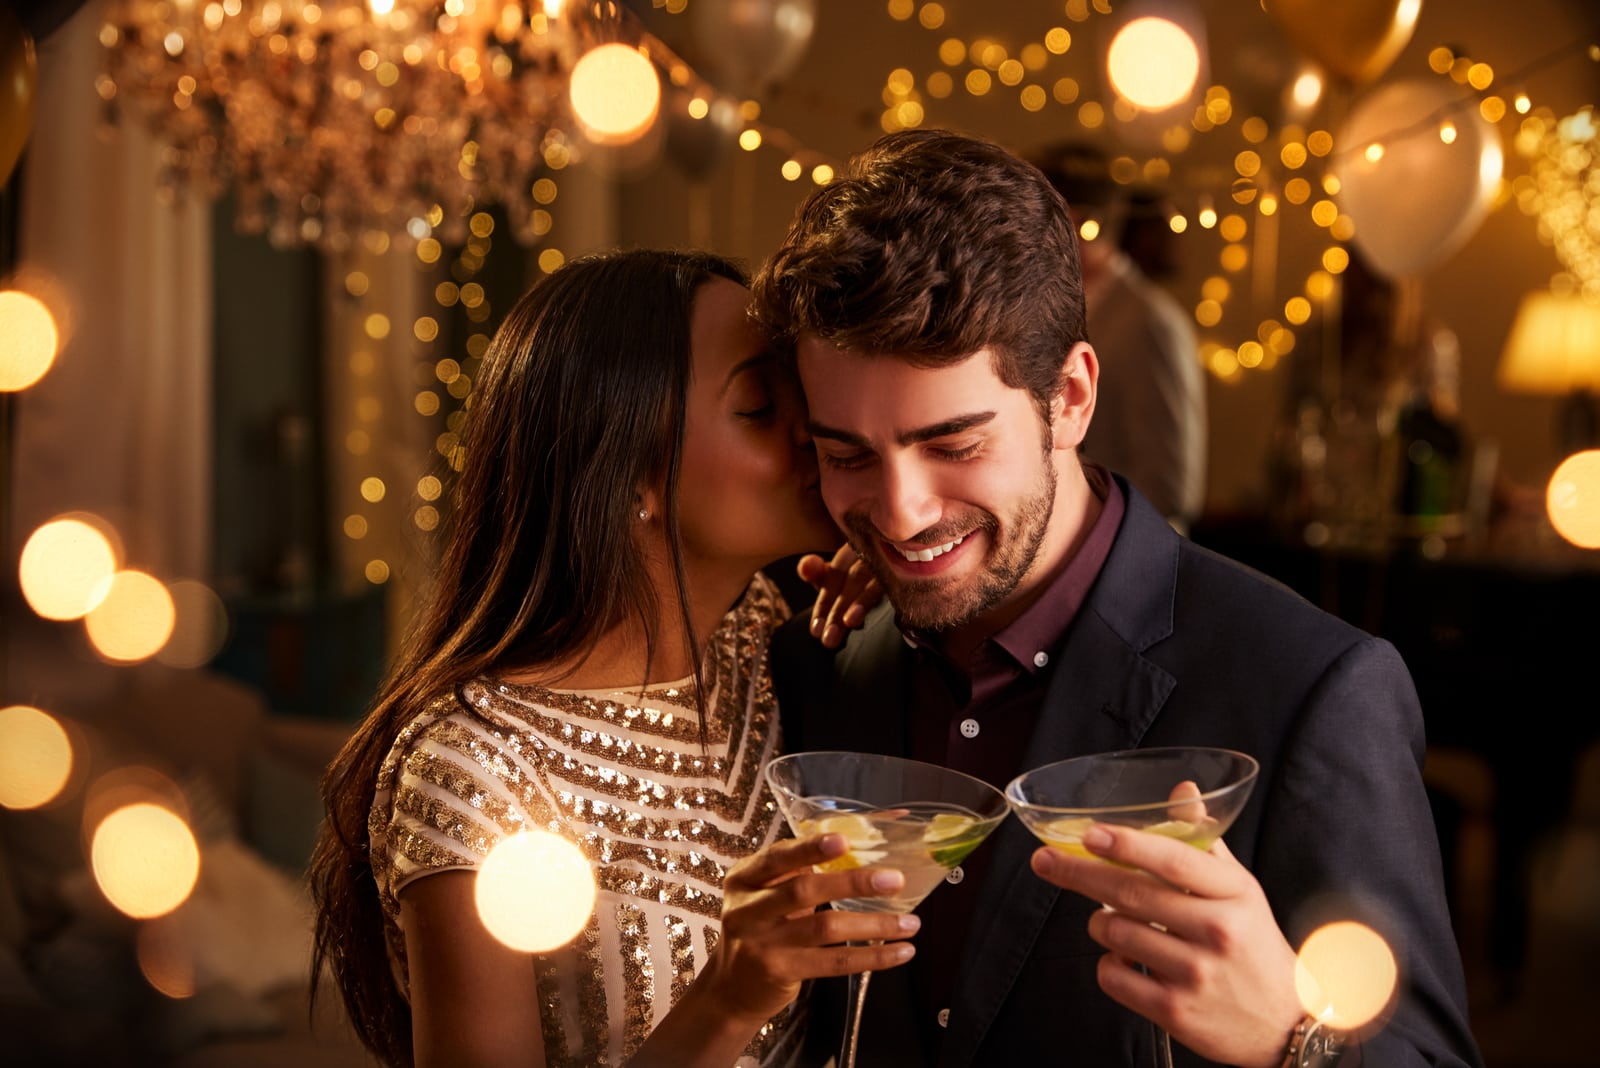 Romantic Couple Enjoying Cocktail Party Together